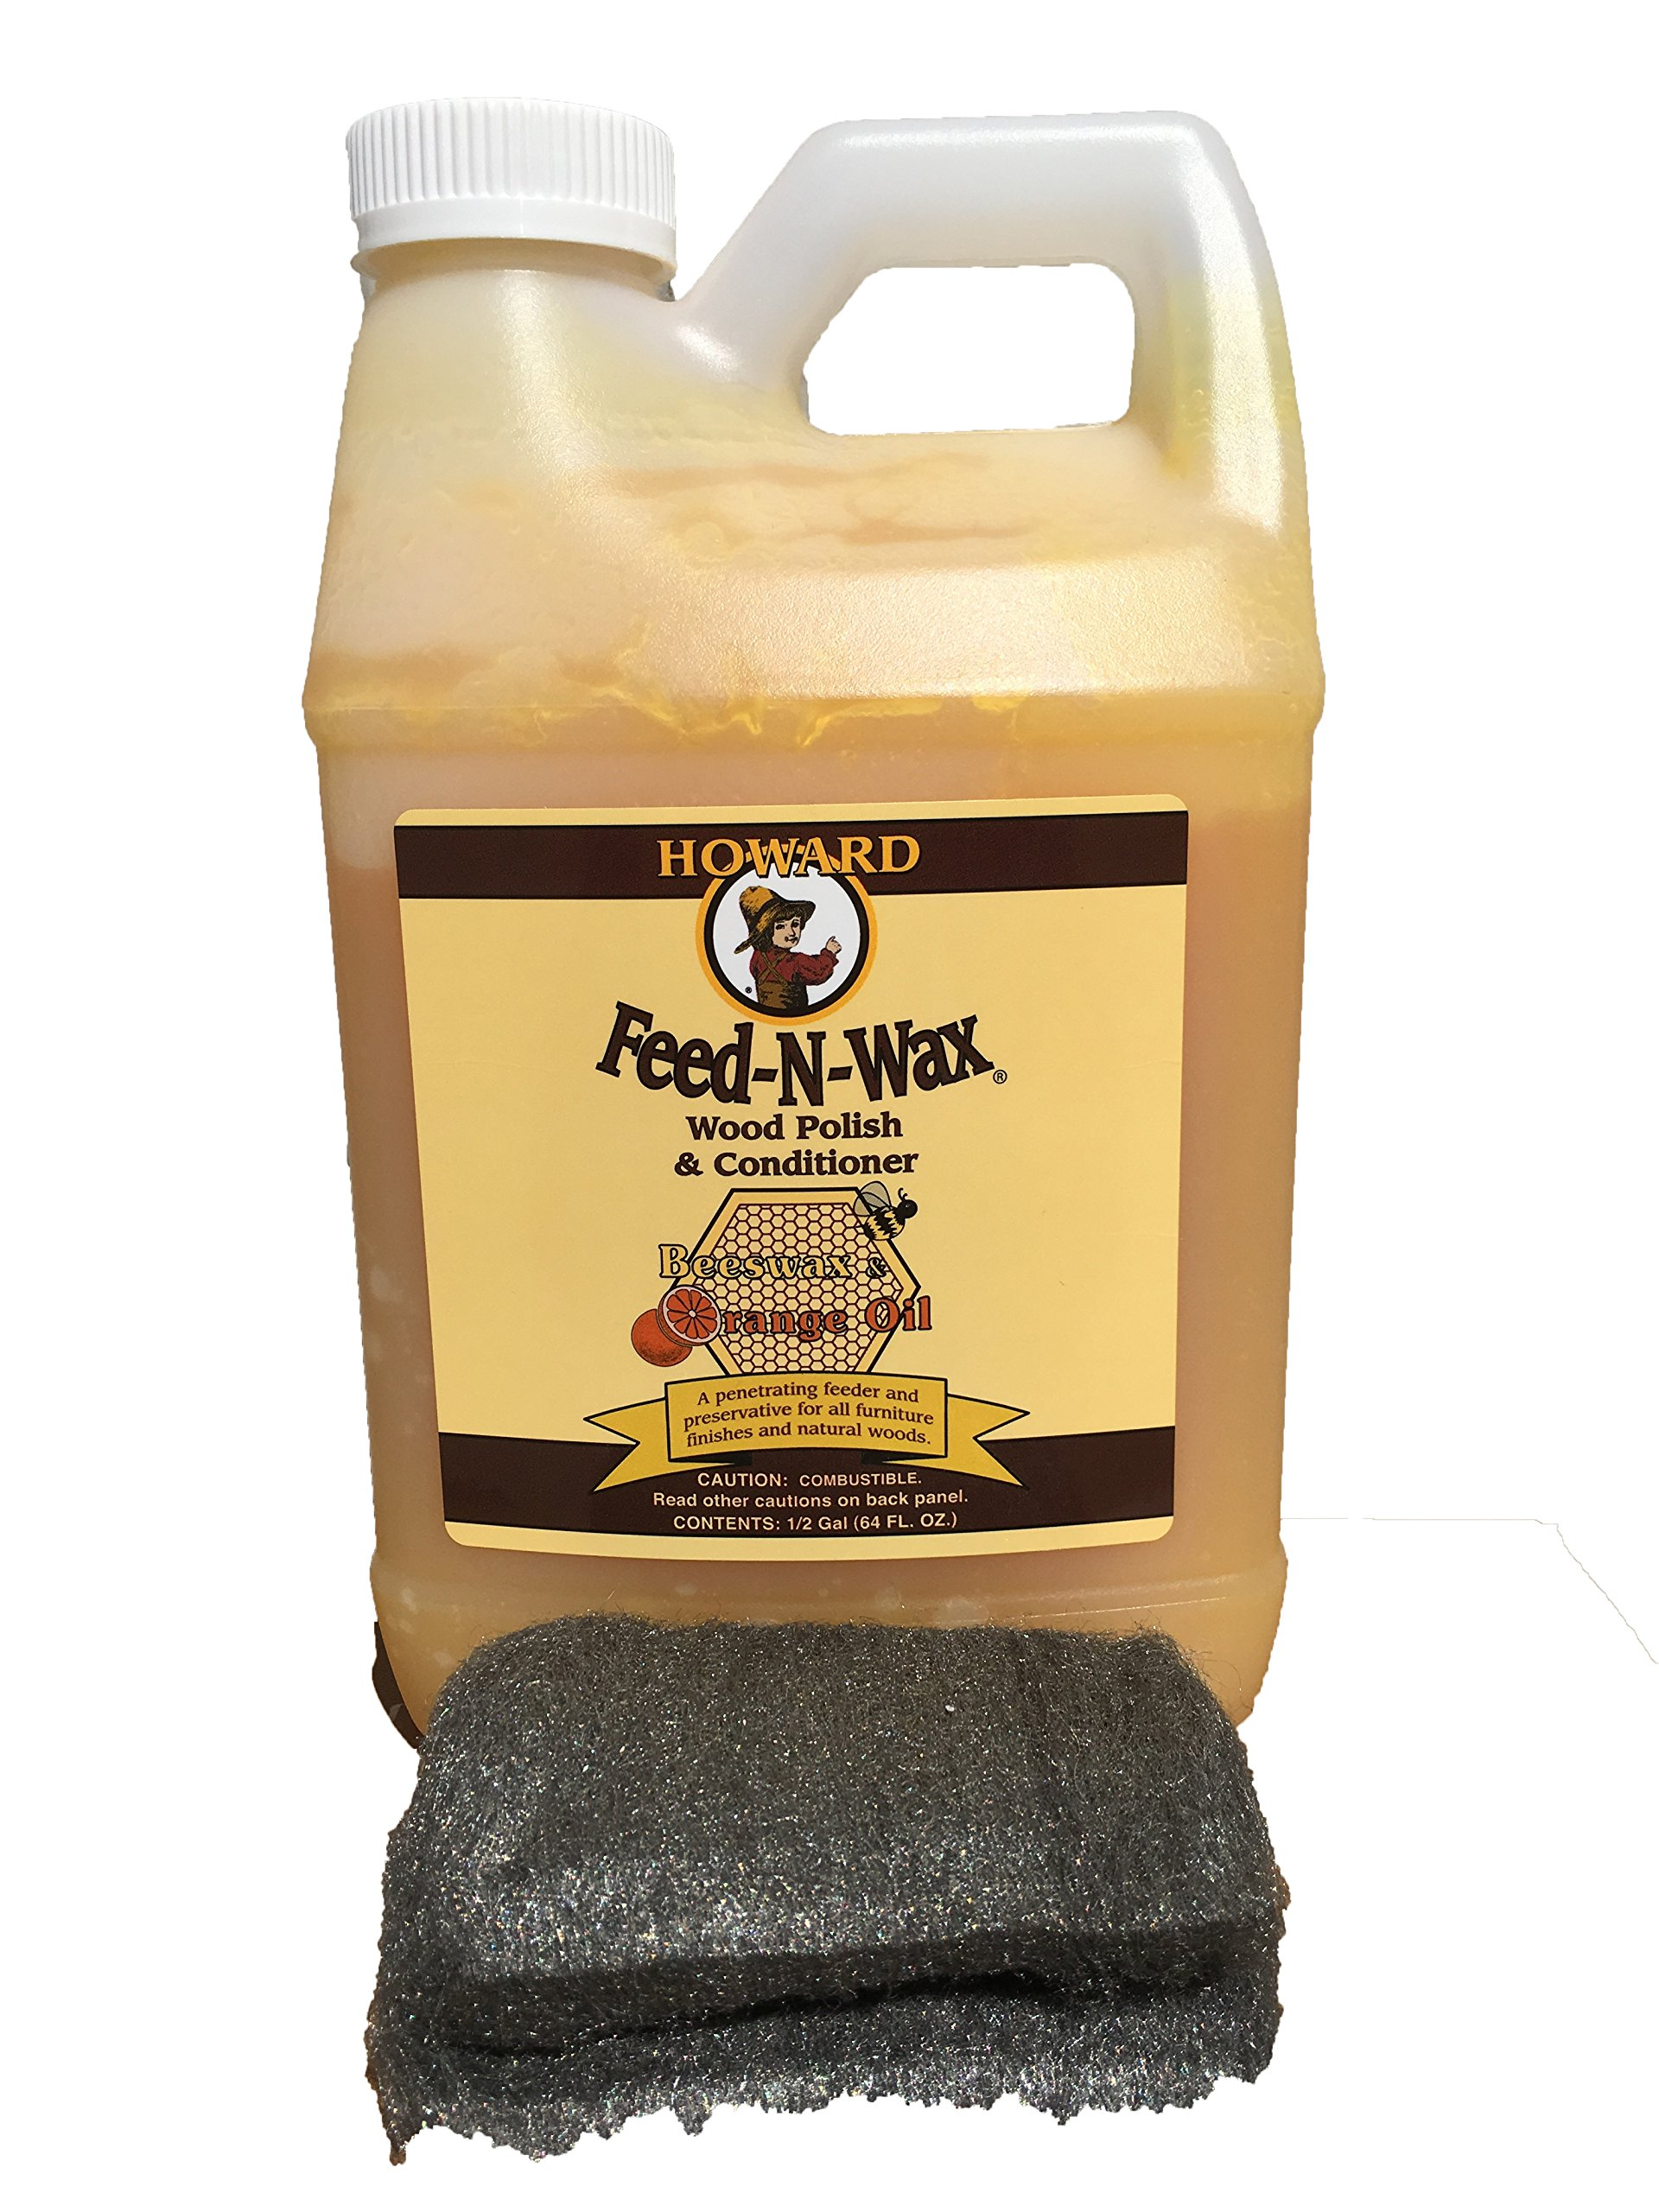 Howard Feed-N-Wax Restorative Wood Furniture Polish and Conditioner 64 Ounce 1/2 Gallon, Beeswax Feeds Wood, Antique Furniture Restoration by Howard Products